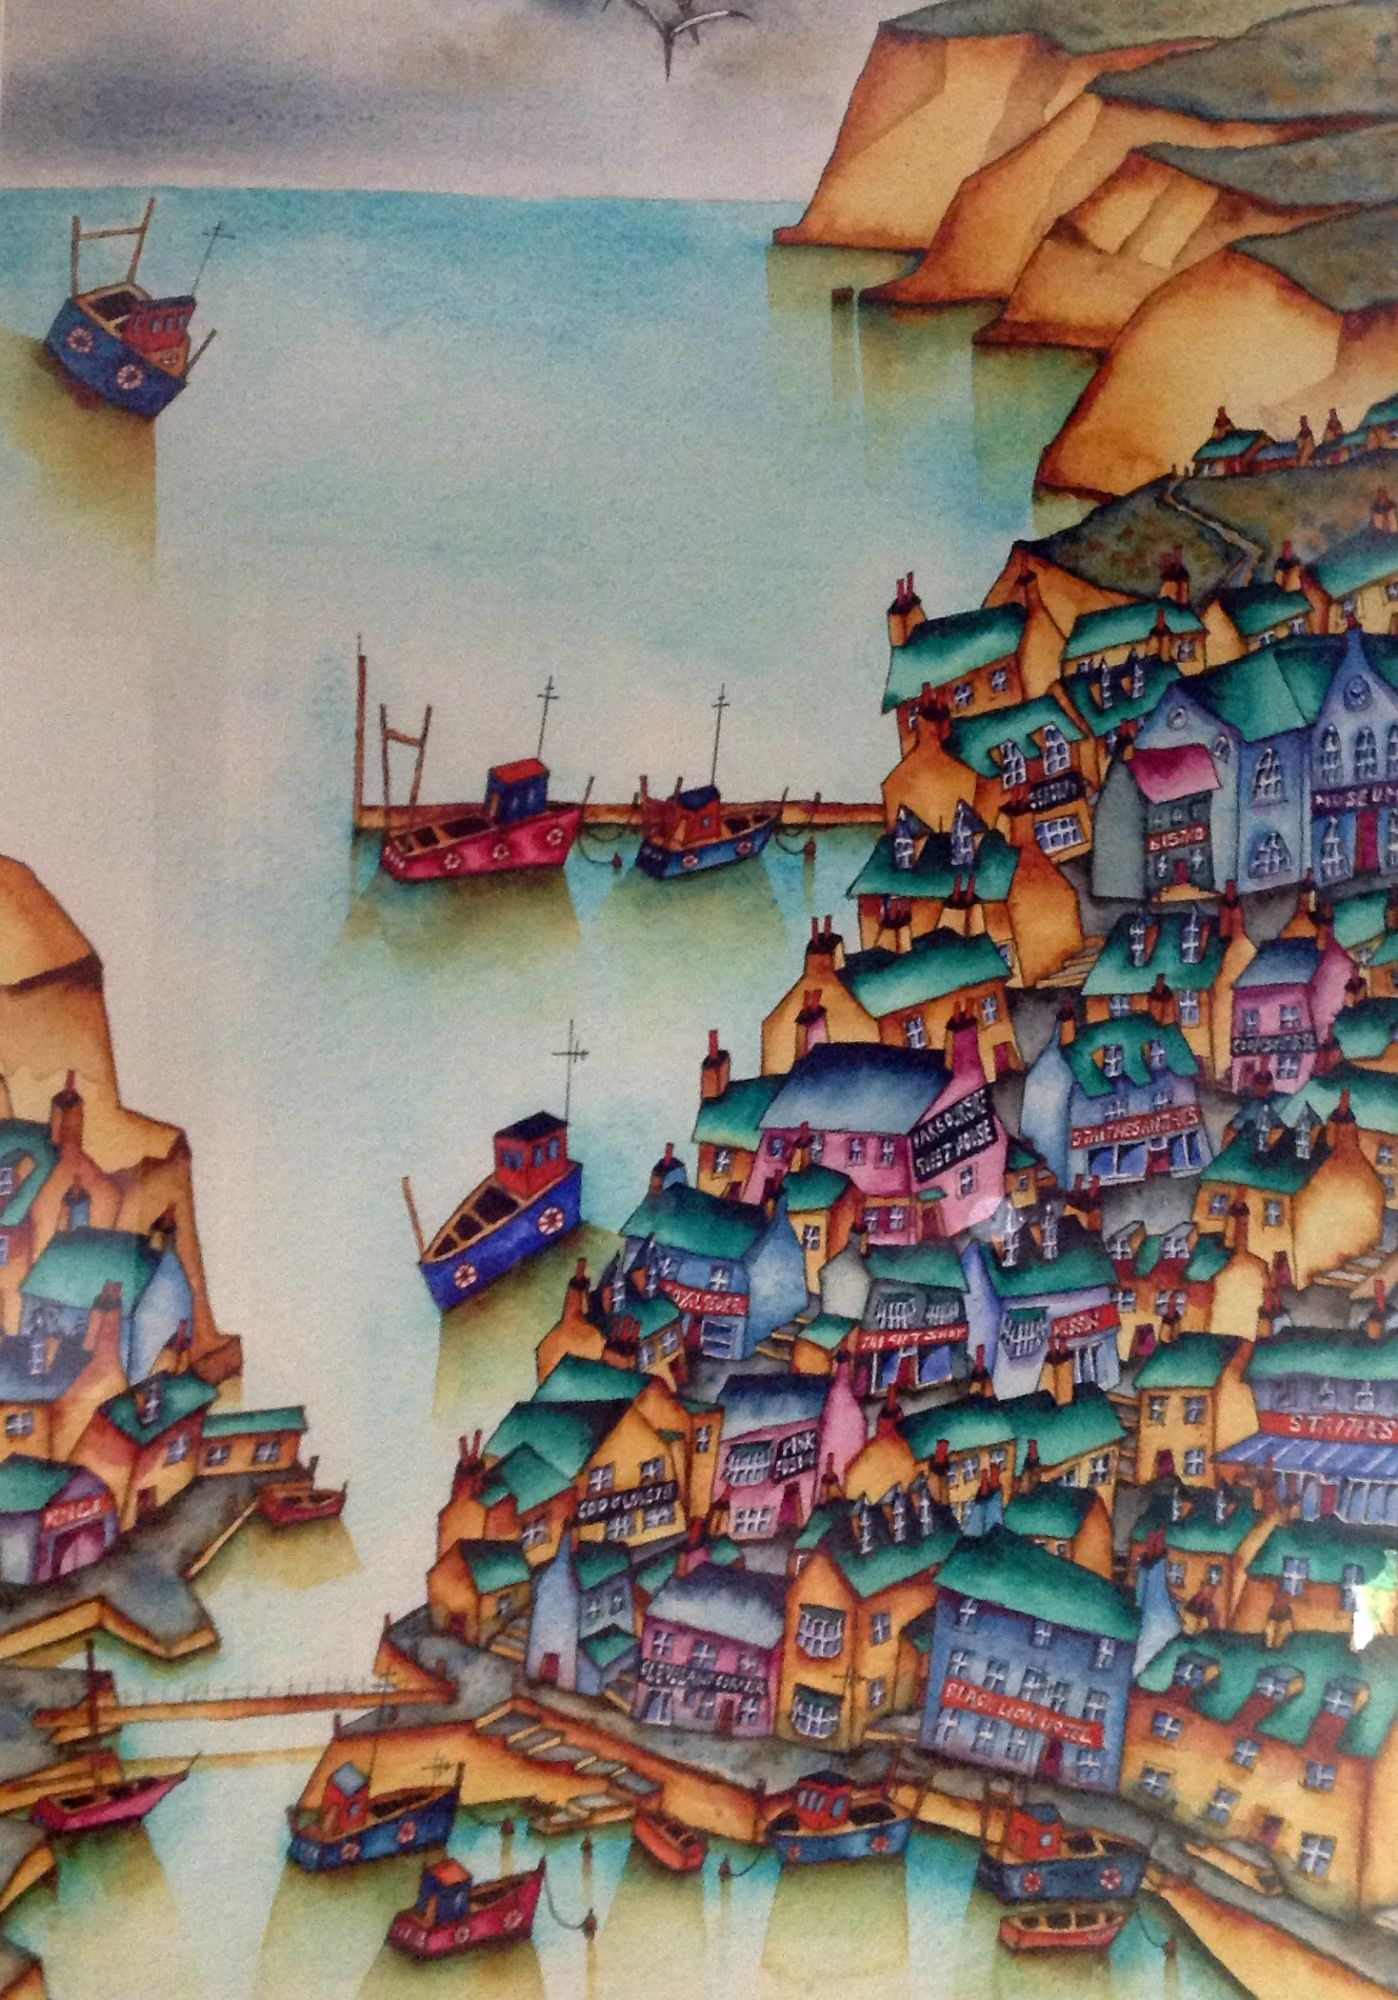 artist village, seaside, atmospheric, tumbling cottages, snickets, ginnels, alleyways, fishing boats